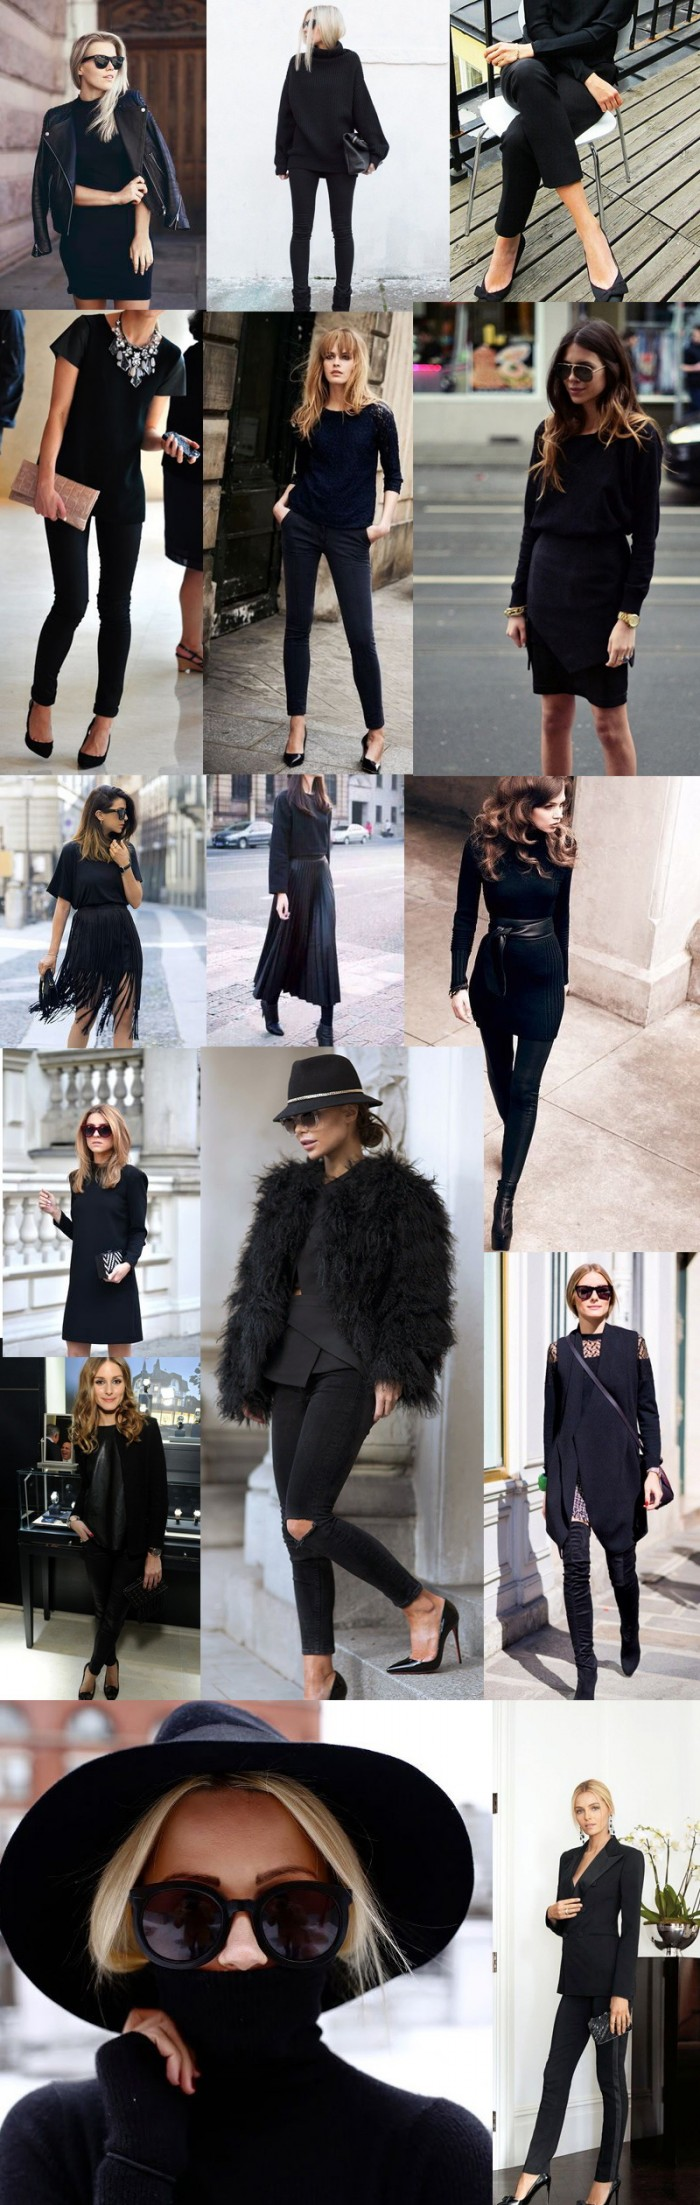 3 Winter-Party-Outfit-Ideas-For-Women-4-700x2205.jpg